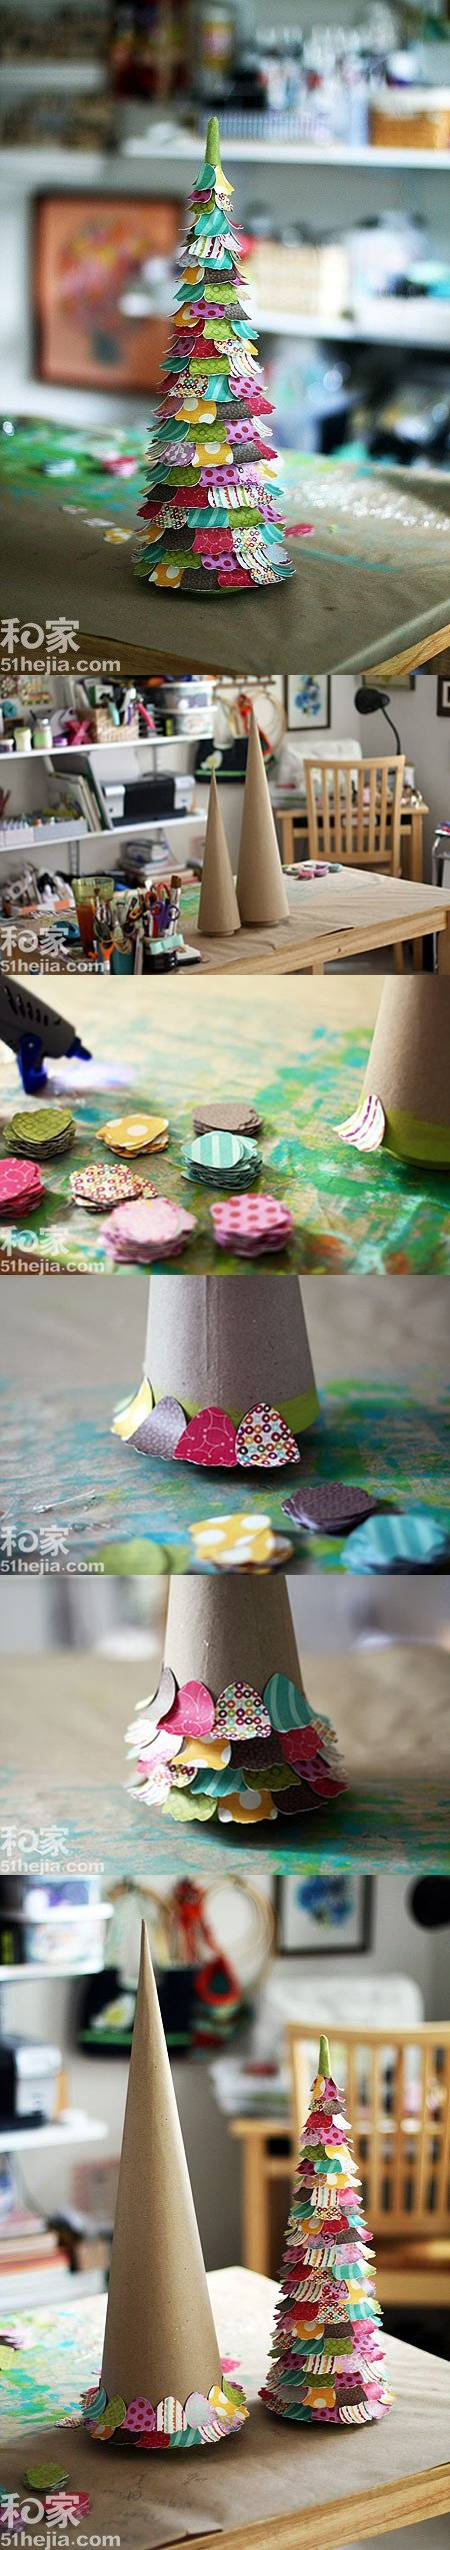 diy-colorful-paper-christmas-tree Last-Minute DIY Christmas Gift Tutorials Everyone will Love